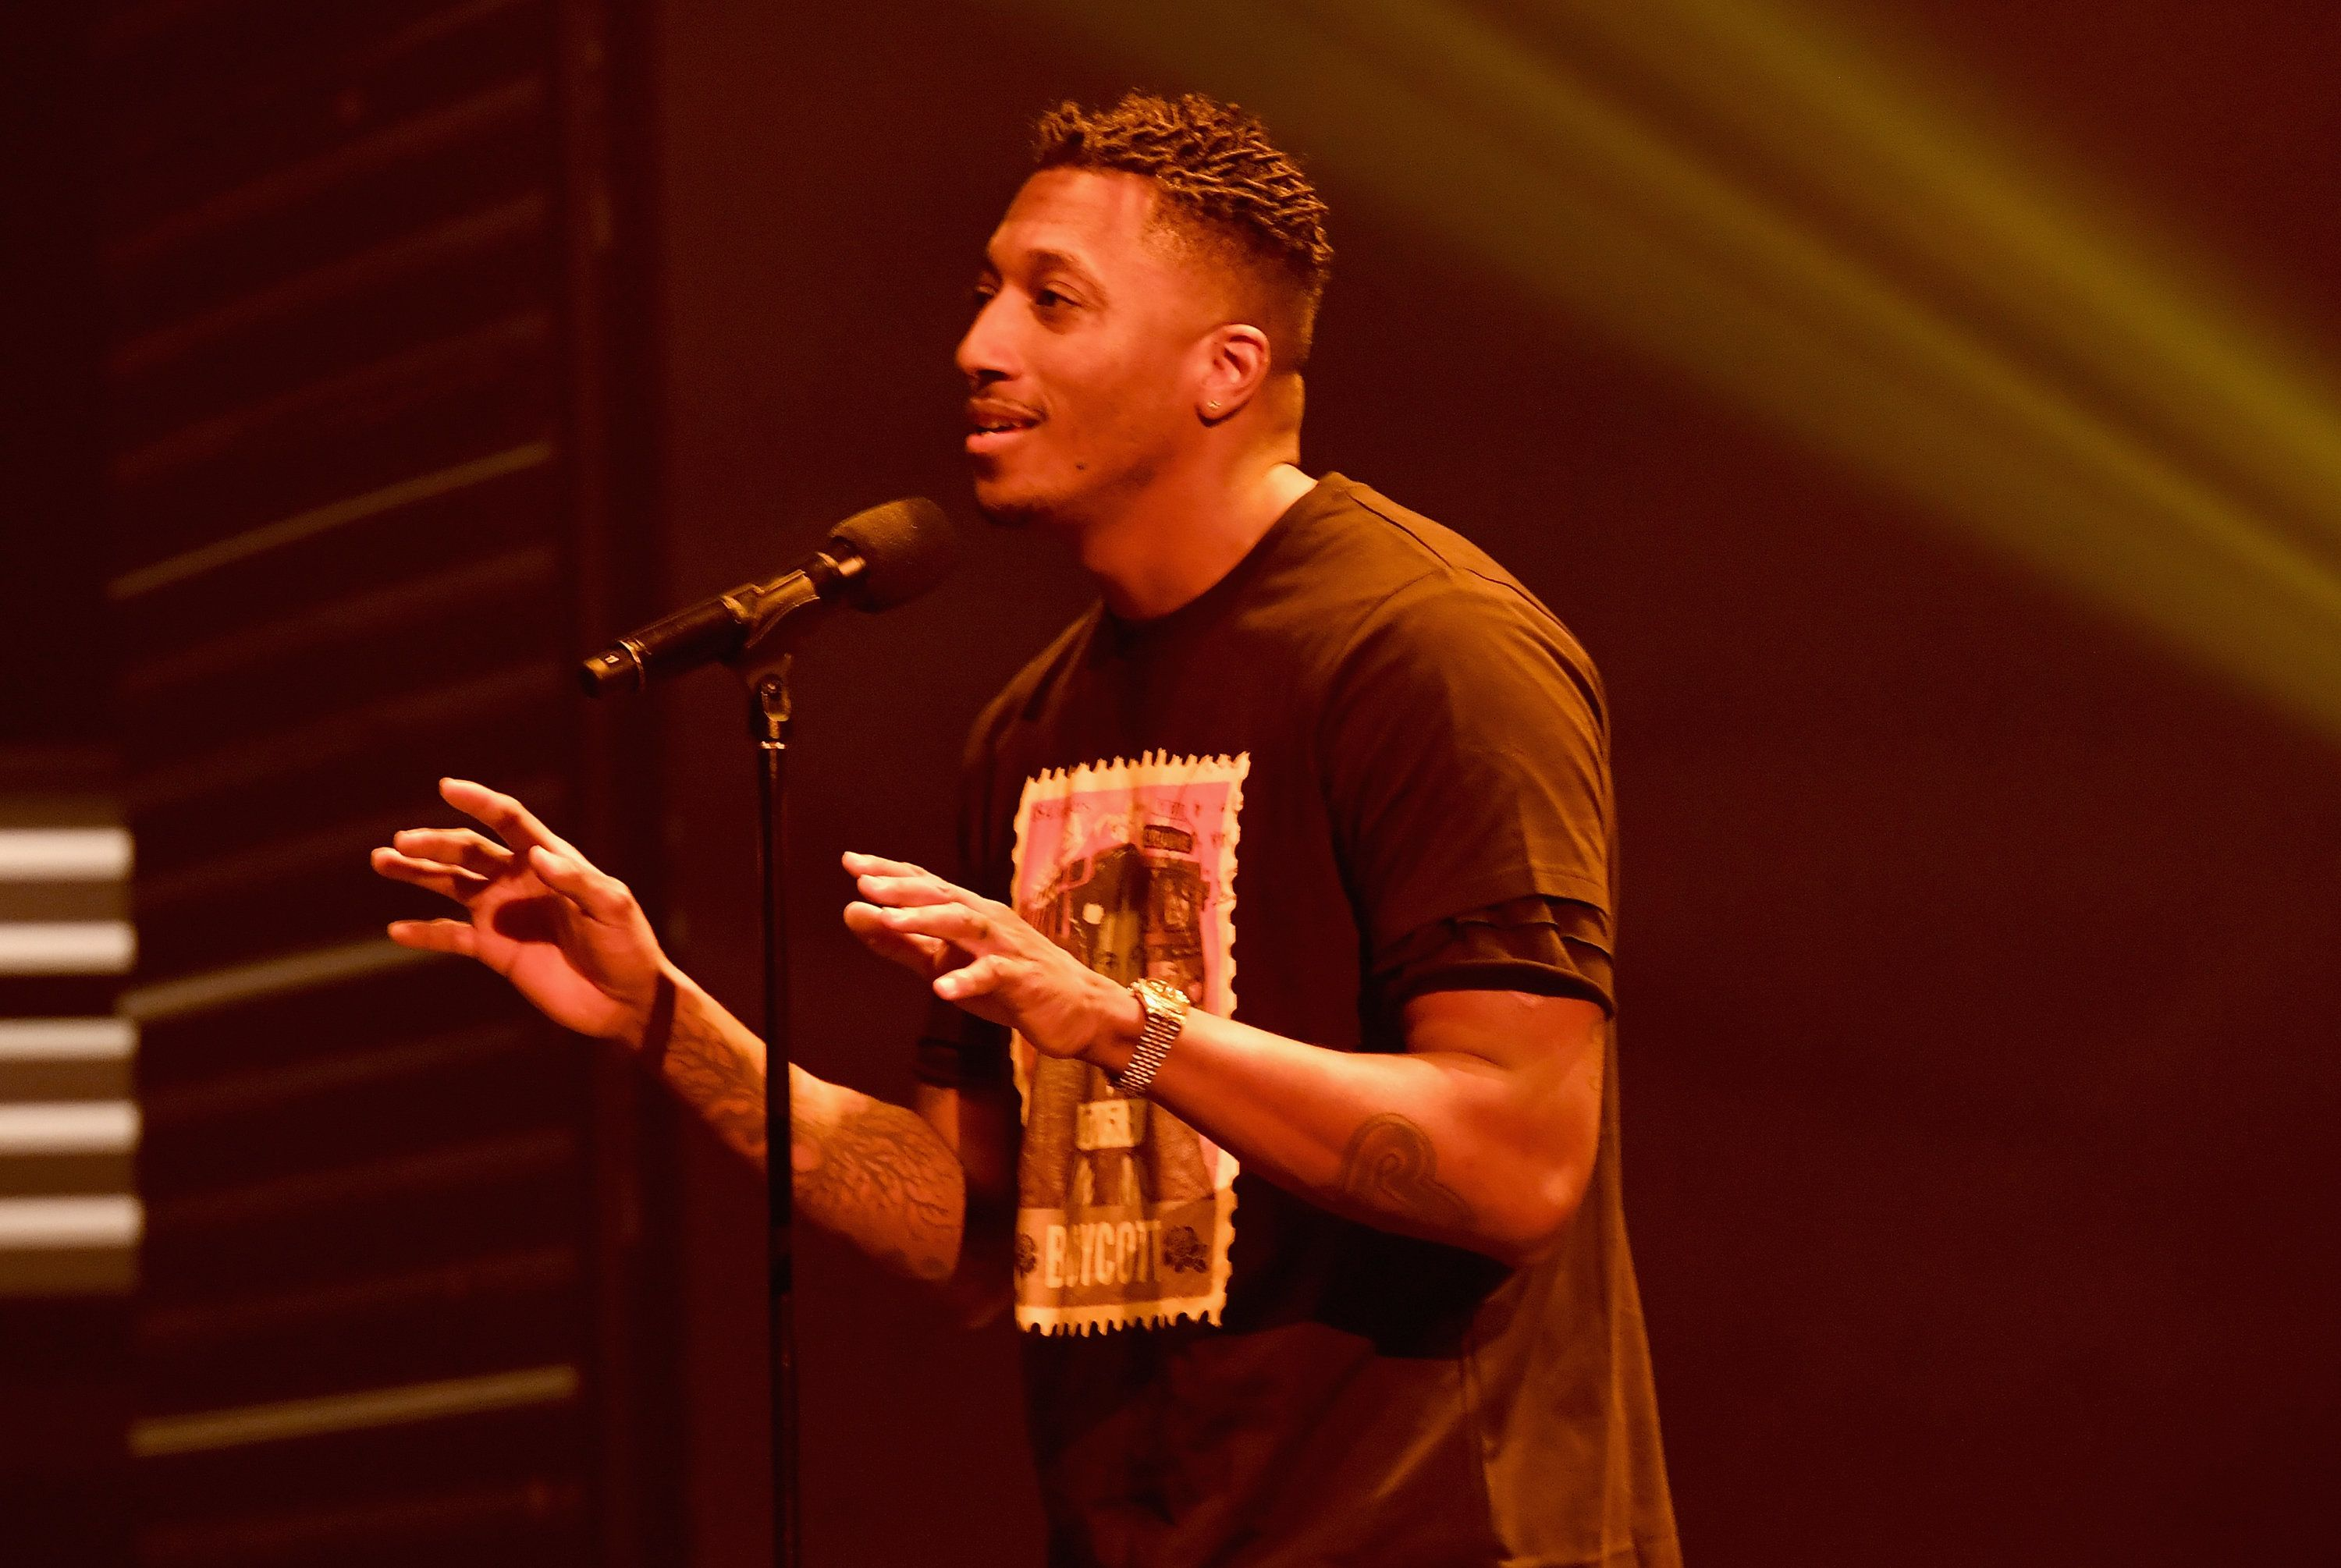 ATLANTA, GA - SEPTEMBER 17:  Lecrae performs onstage during the 2016 BET Hip Hop Awards at Cobb Energy Performing Arts Center on September 17, 2016 in Atlanta, Georgia.  (Photo by Paras Griffin/BET/Getty Images for BET)